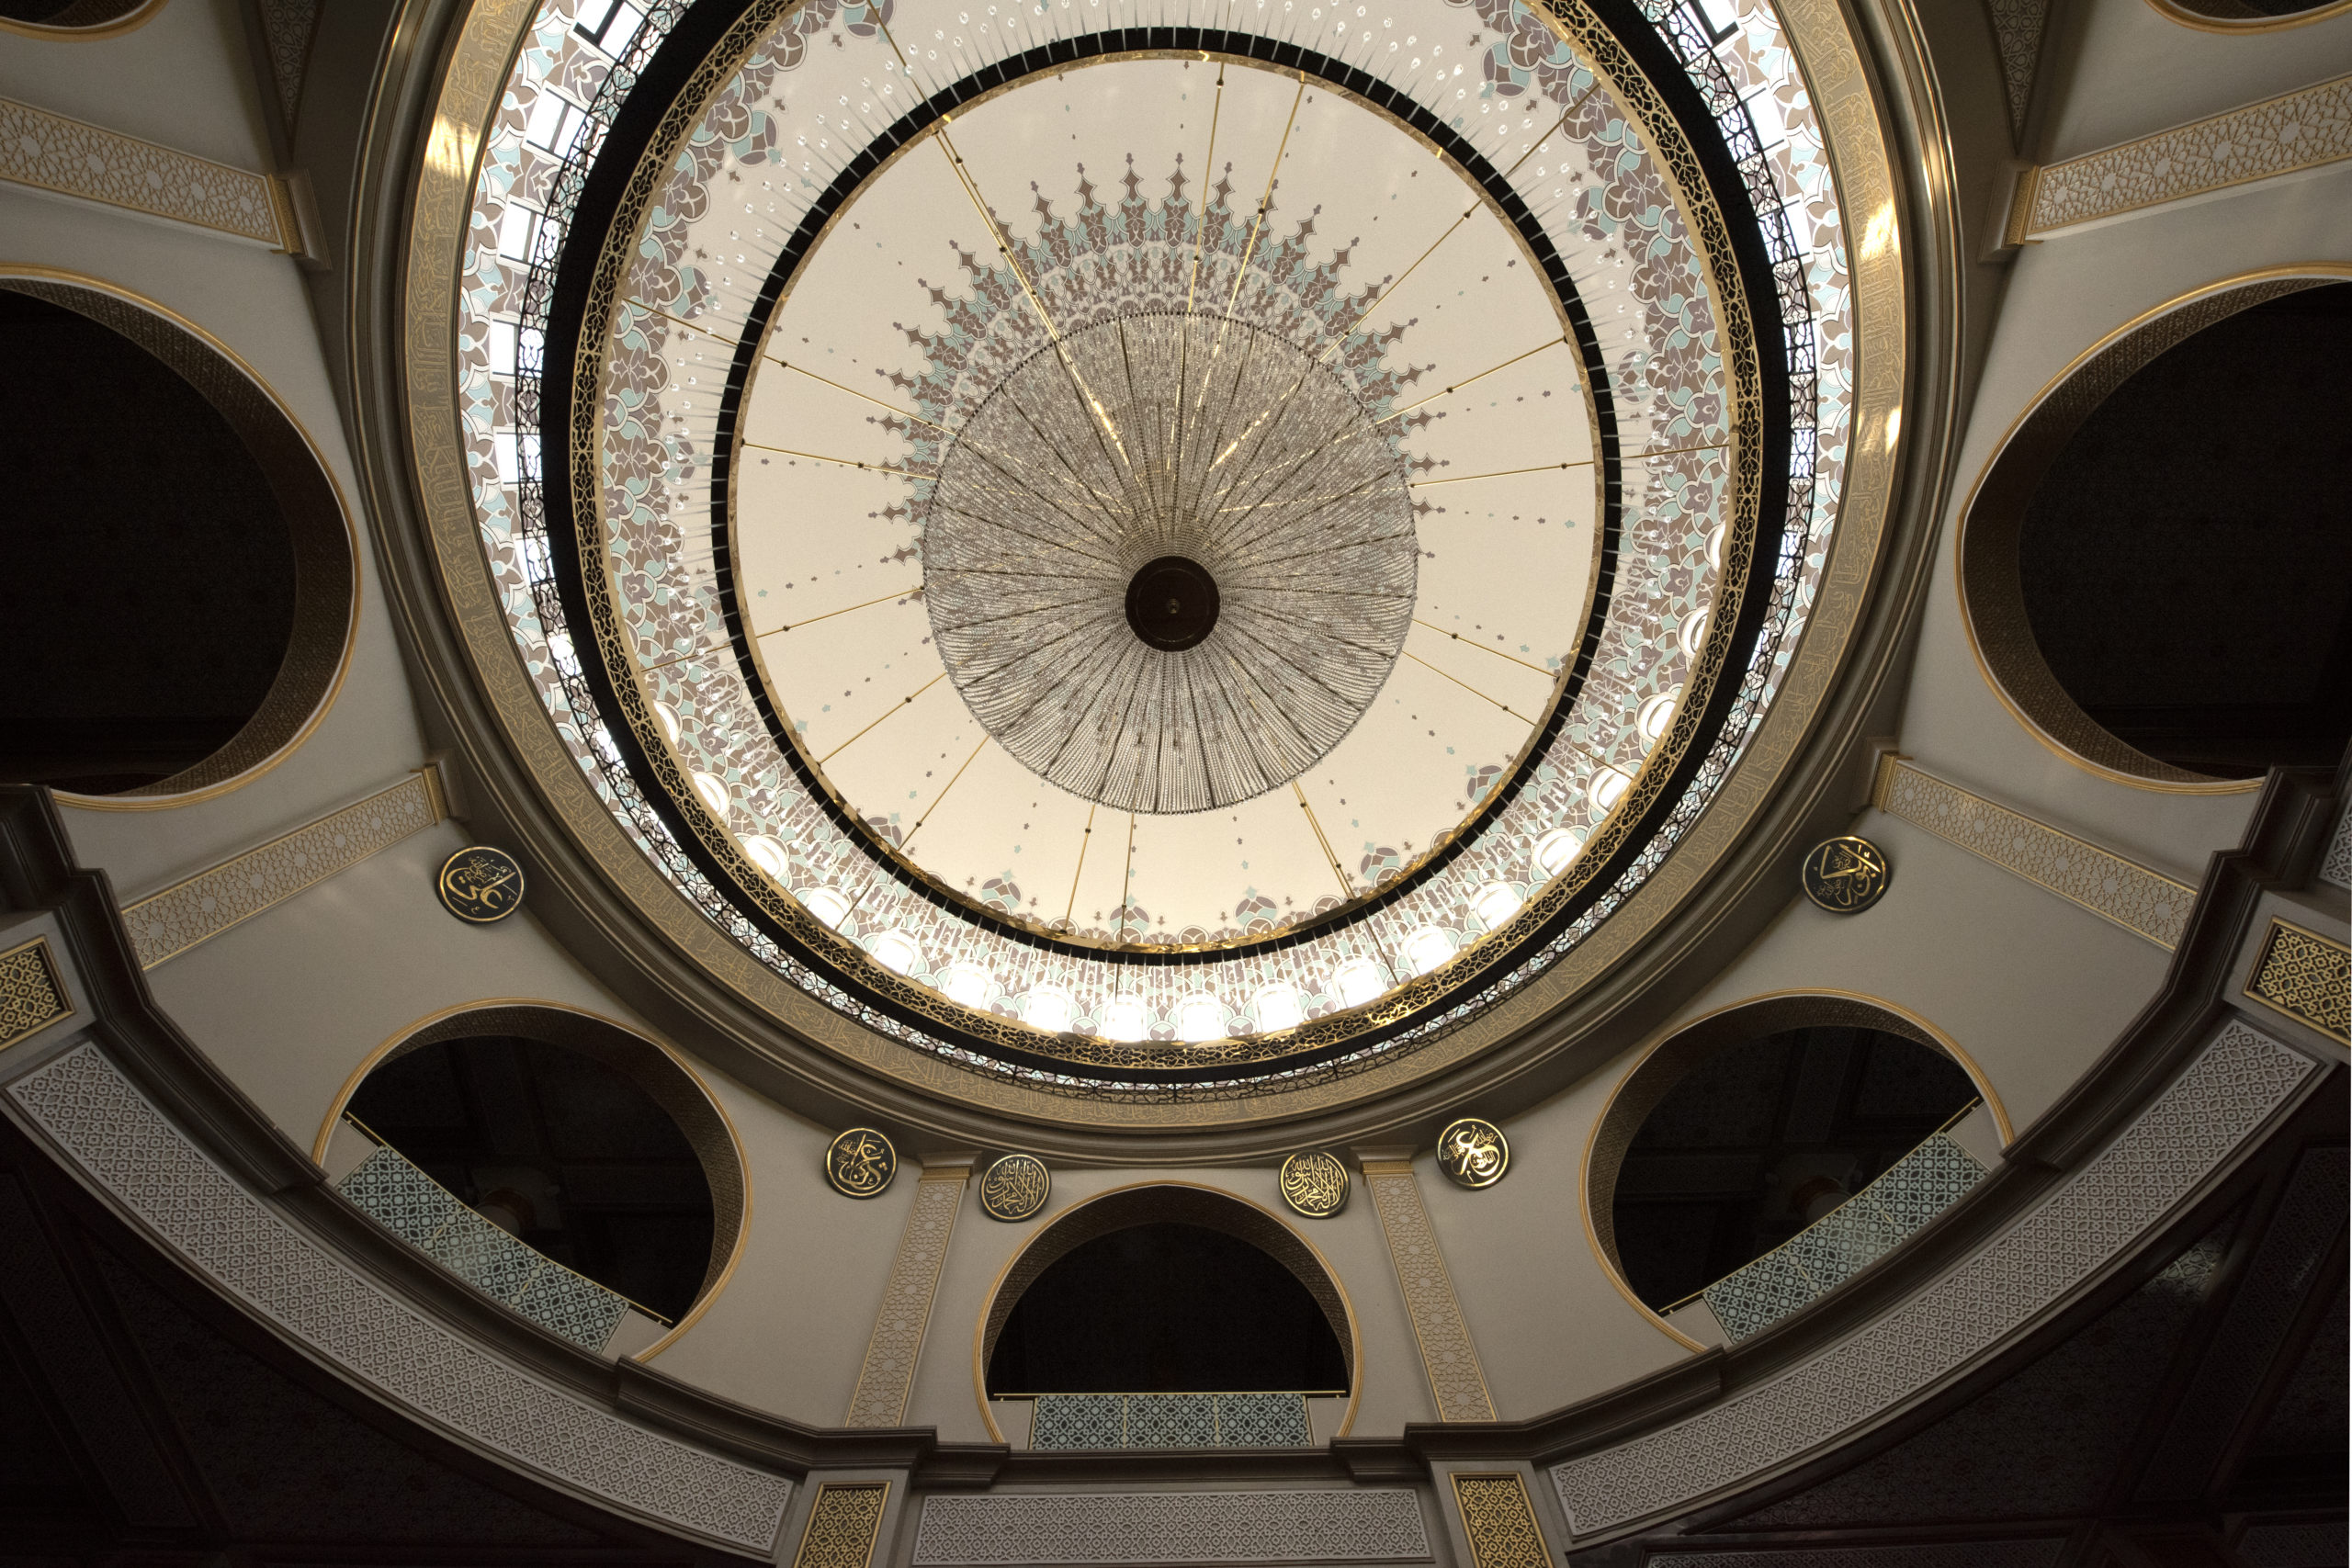 Chandelier at the mosque